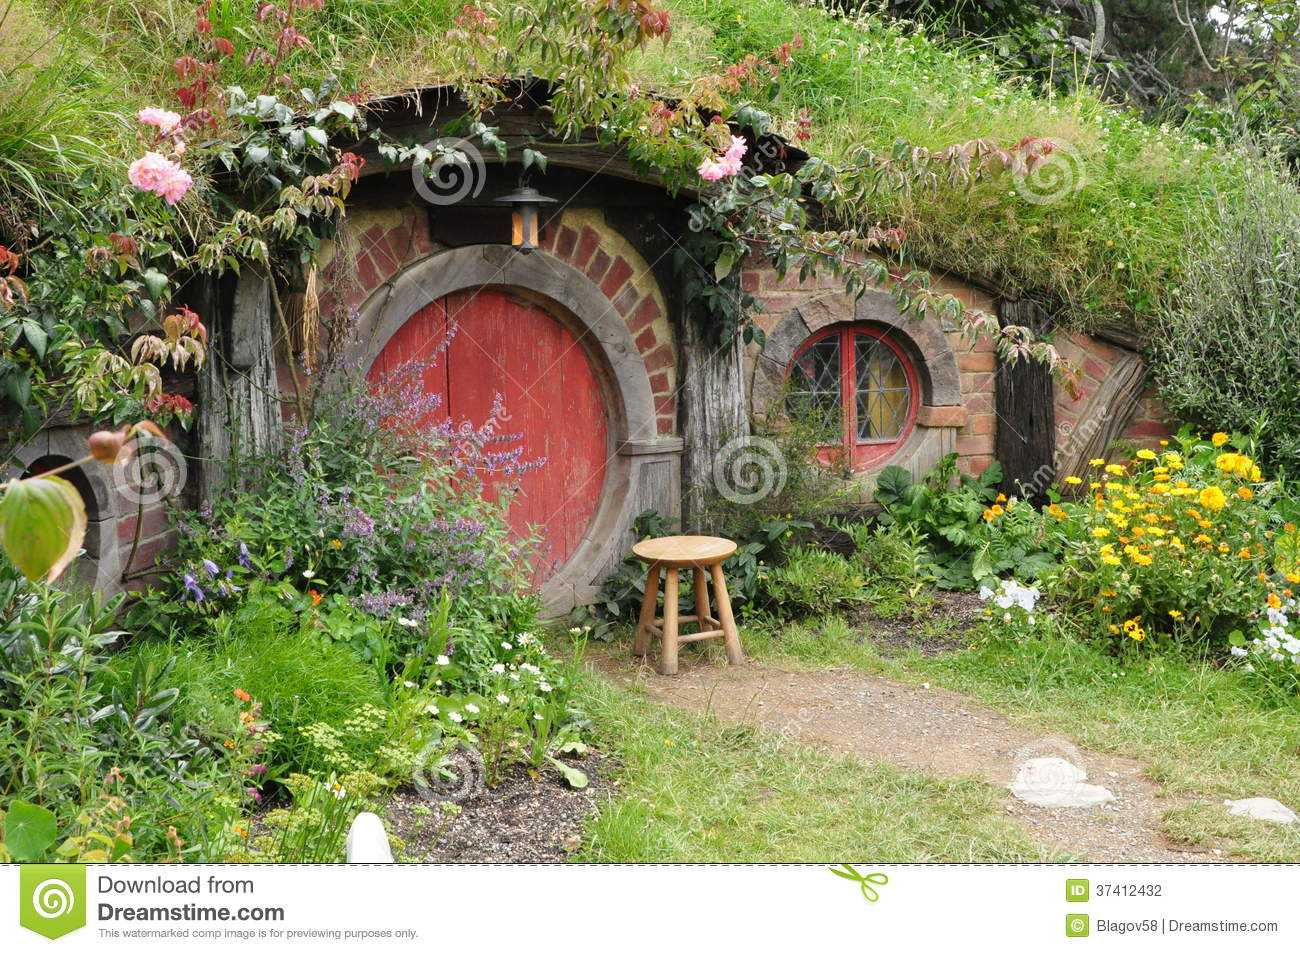 Photographie Stock Maison Rouge De Hobbit De Porte Image37412432 on garden playhouse